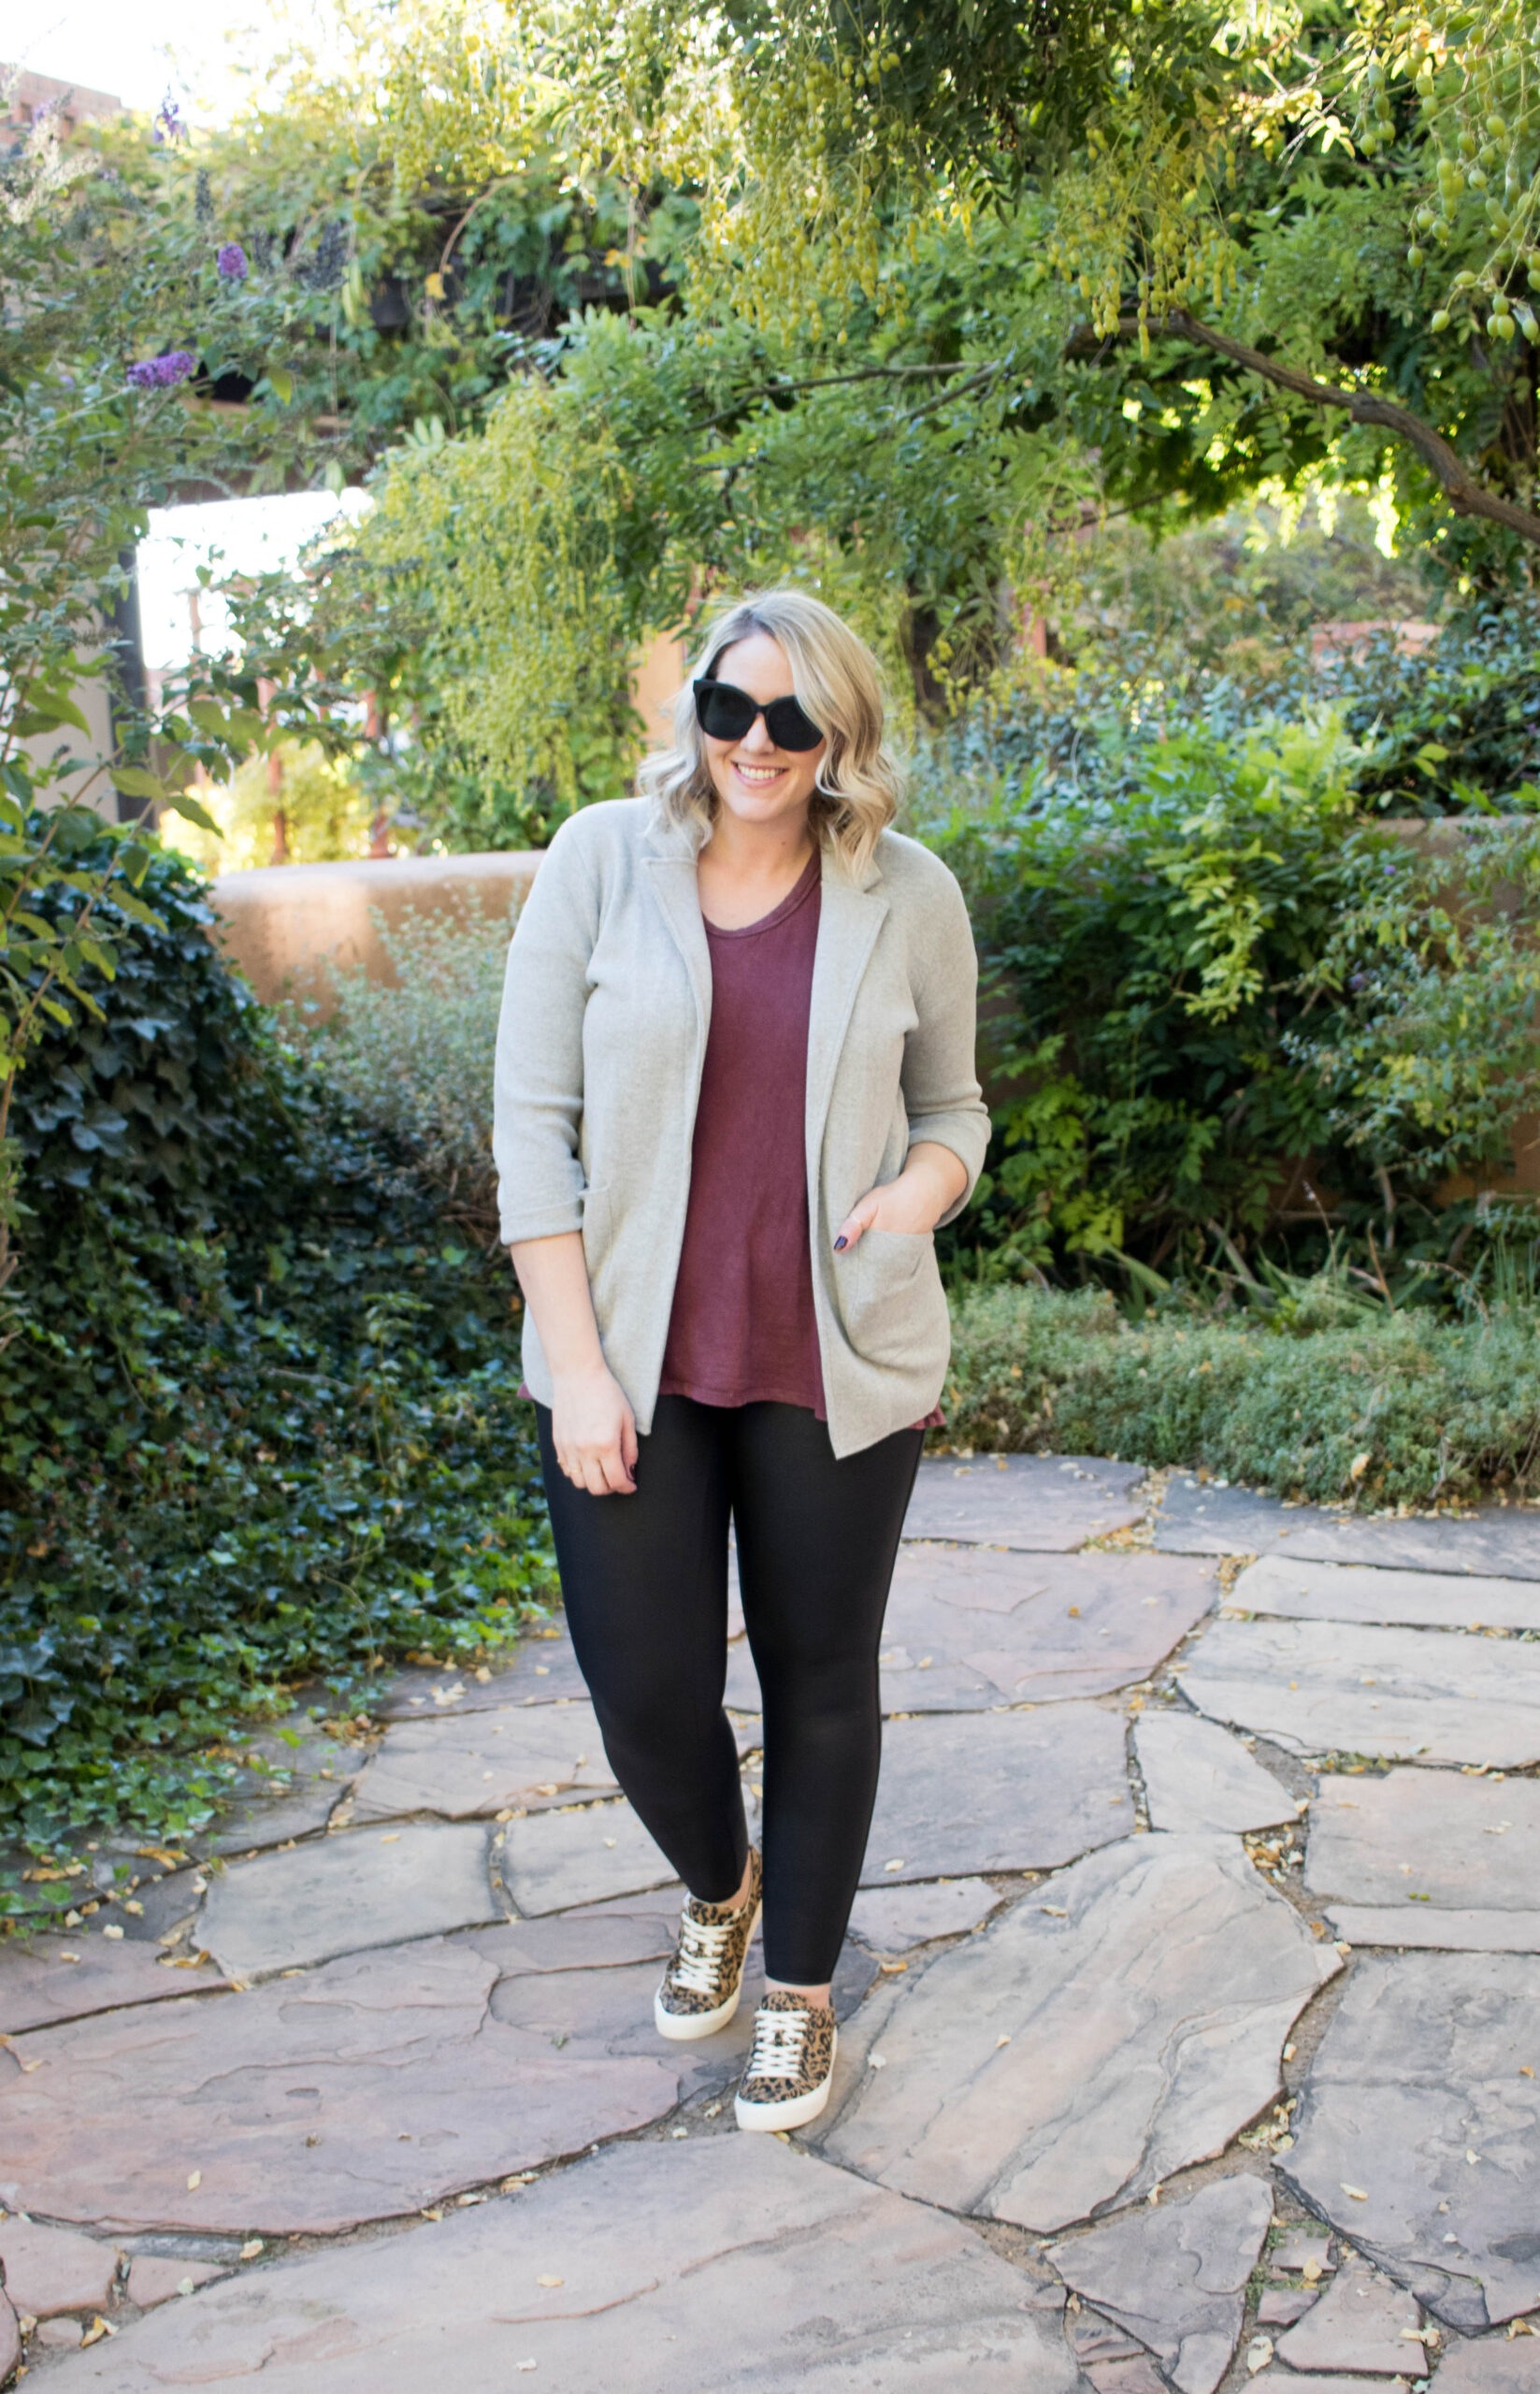 fall layers outfit with spanx leggings #falloutfitideas #curvystyle #jcrewblazer